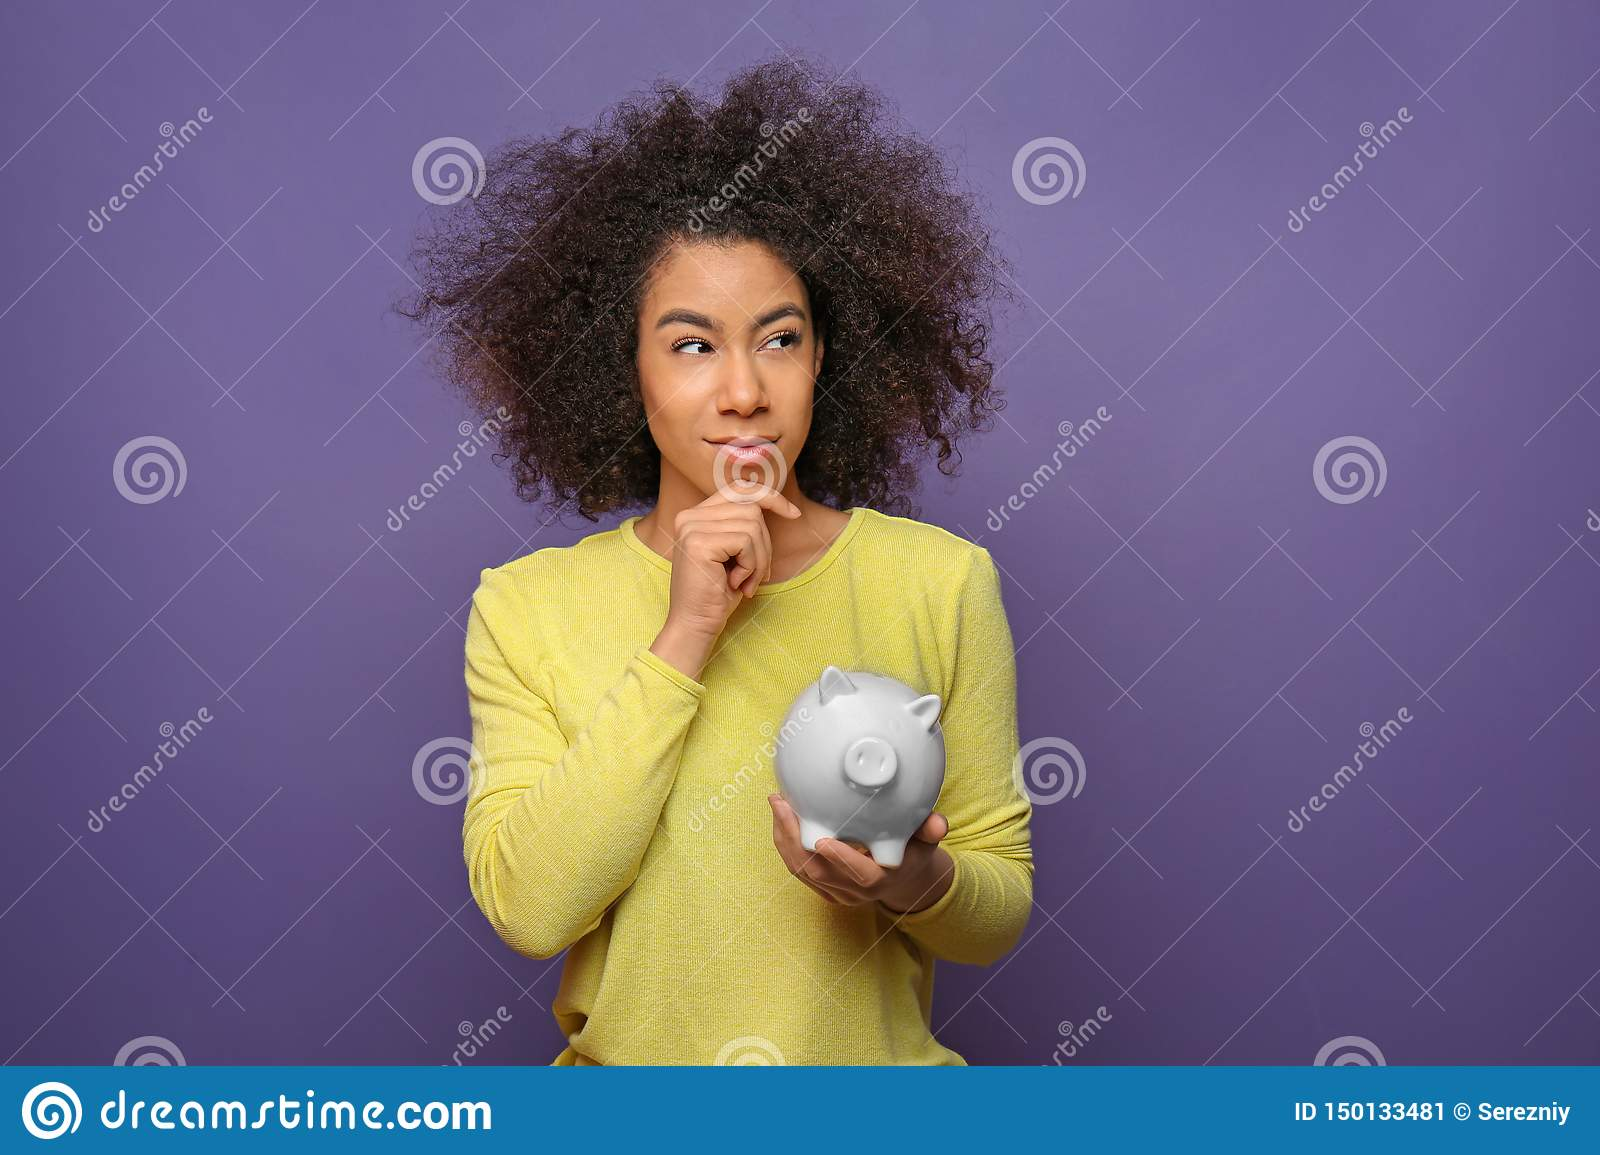 Thoughtful young African-American woman with piggy bank on color background. Savings concept